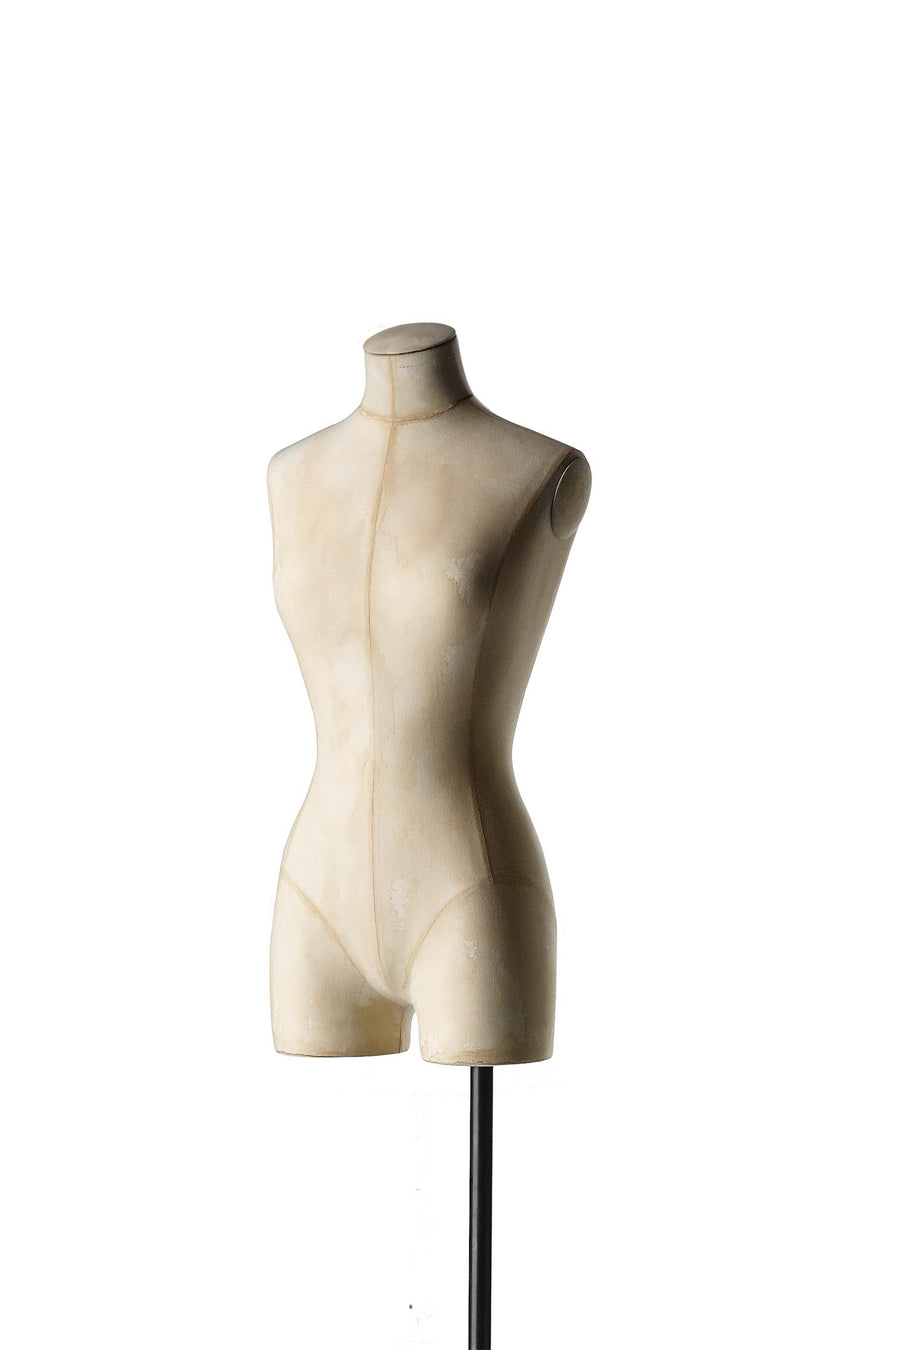 SX-Female 3/4 Tailor Bust Form